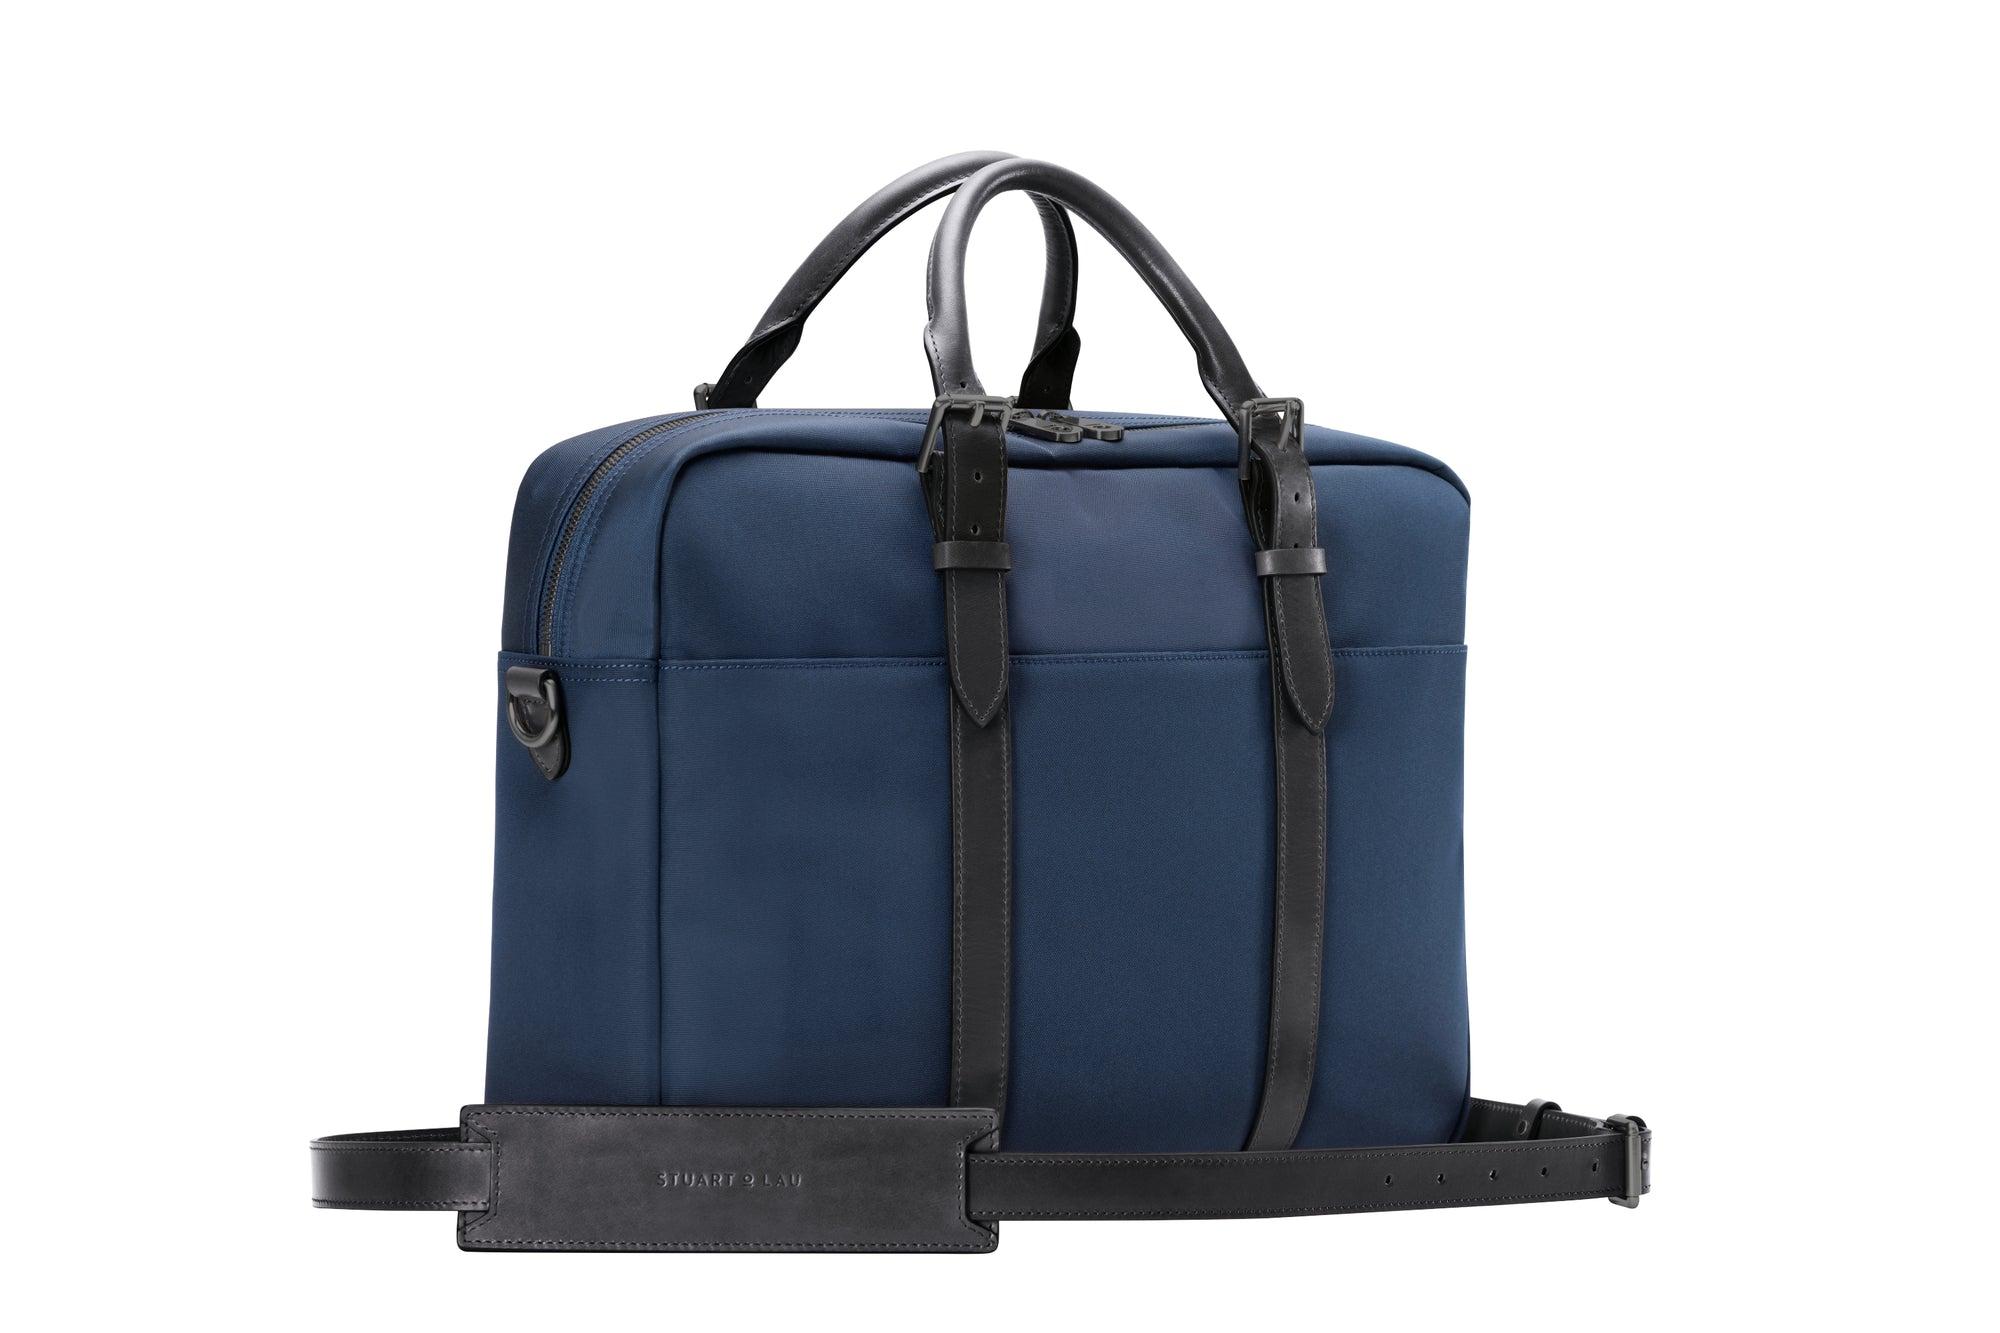 The Cary Briefcase - Single - Navy and Black